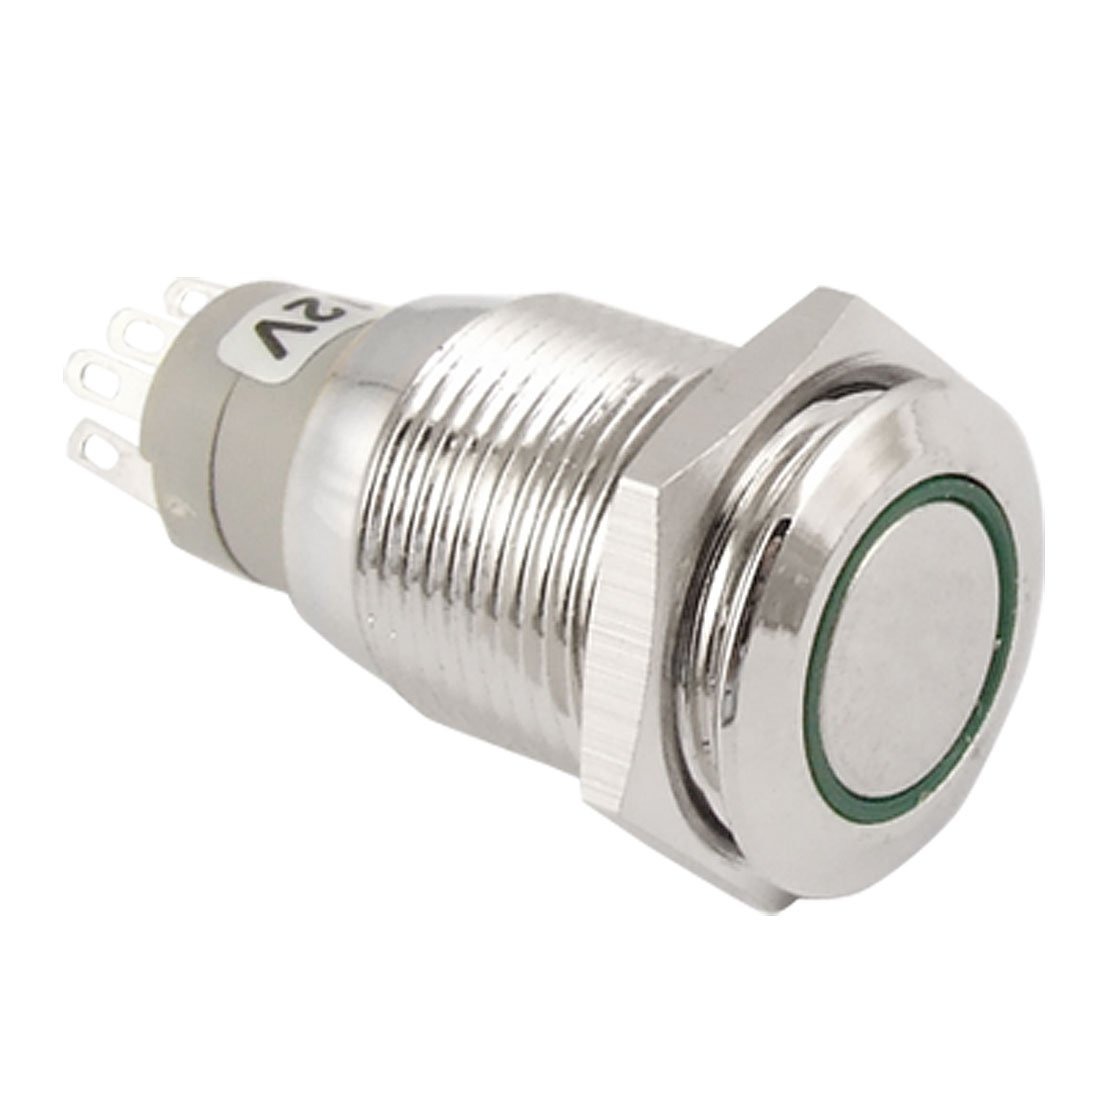 uxcell DC 12V Green LED 16mm Stainless Steel Momentary Pushbutton ...